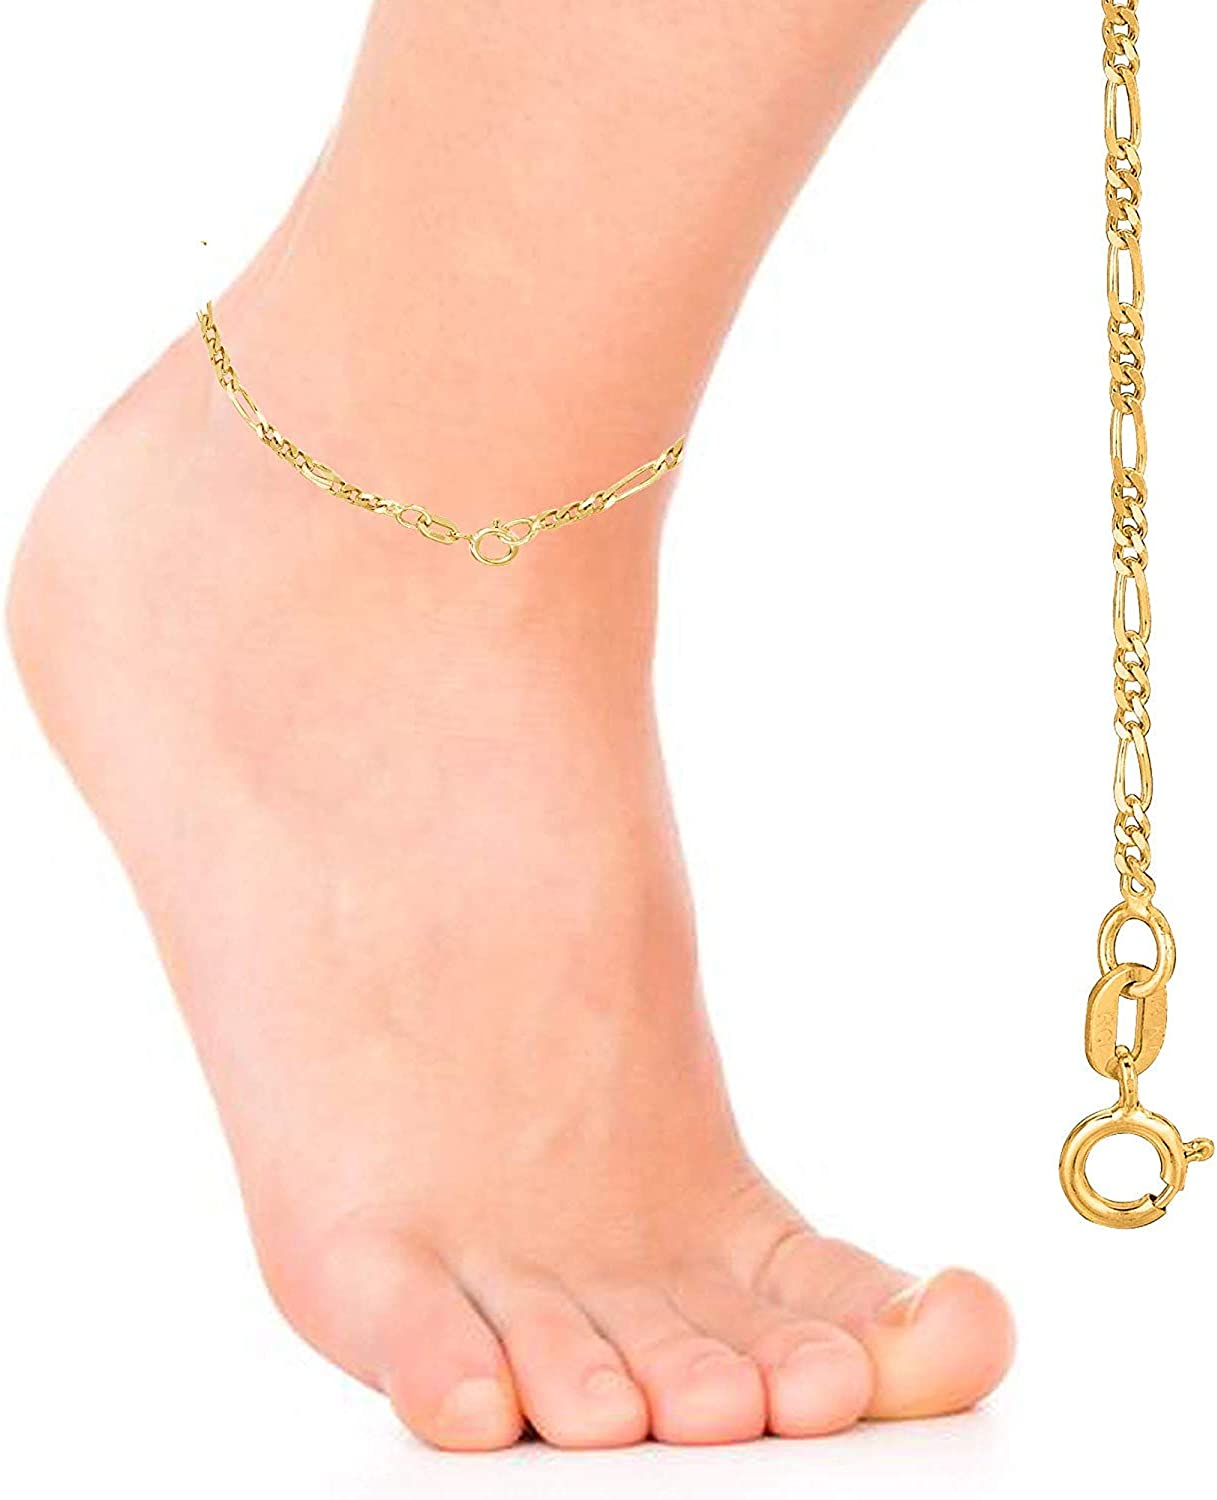 7, 10, 13, 16, 18, 20 or 24 inch 14K Yellow Or White Gold 1.9mm Diamond-Cut Alternate Classic Figaro Chain Necklace Or Bracelet//Foot Anklet for Pendants and Charms with Spring-Ring Clasp